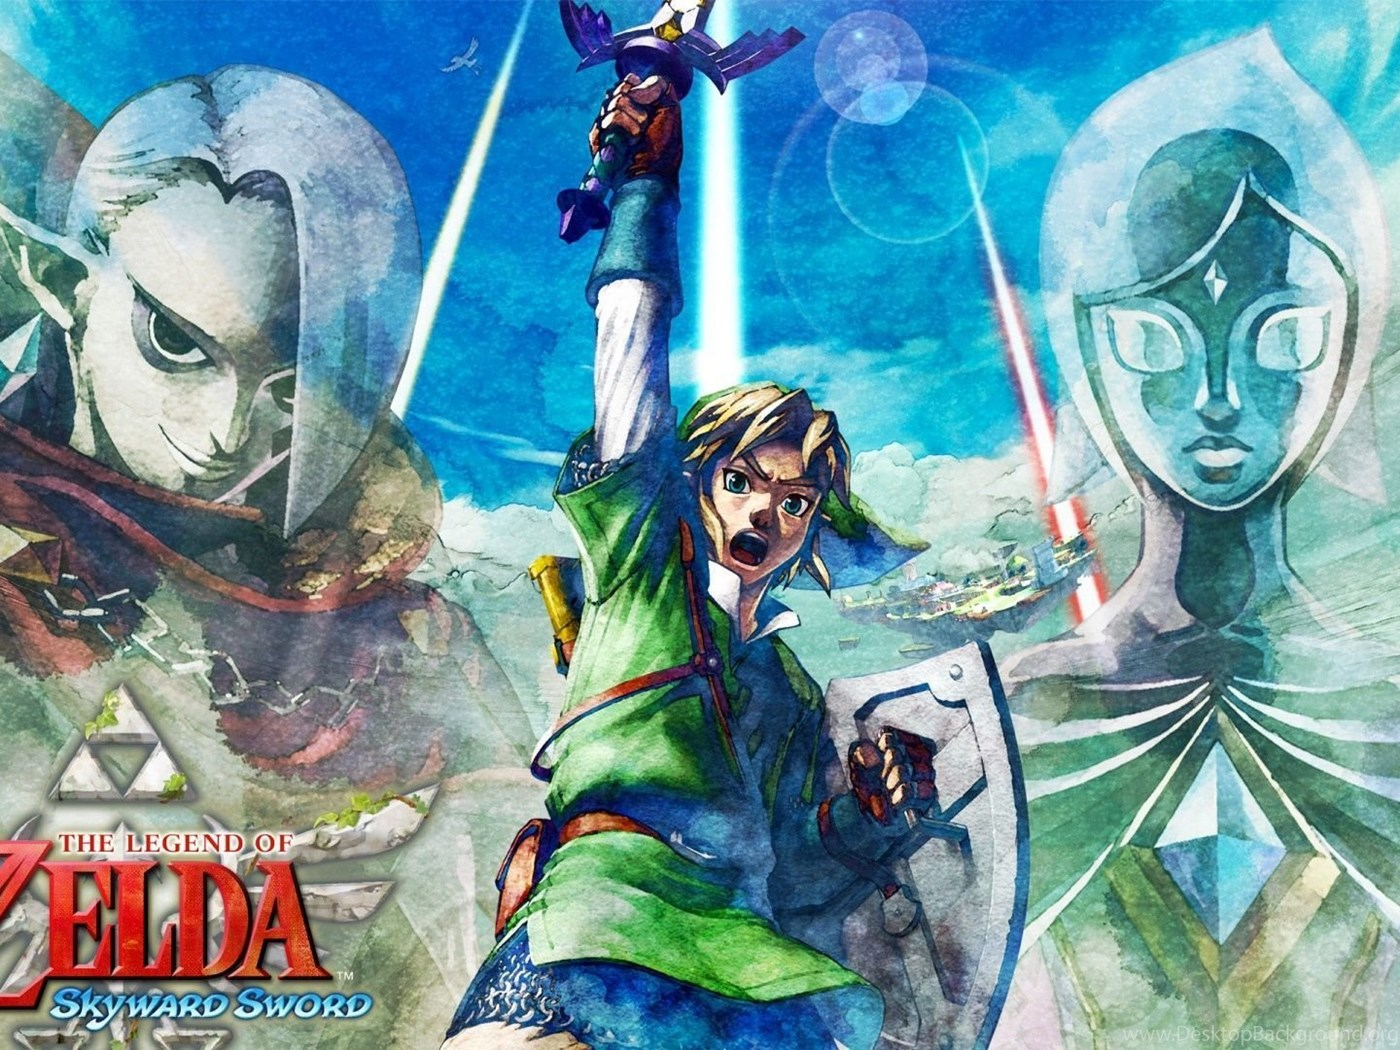 Download Wallpapers 1920x1080 The Legend Of Zelda Skyward Sword